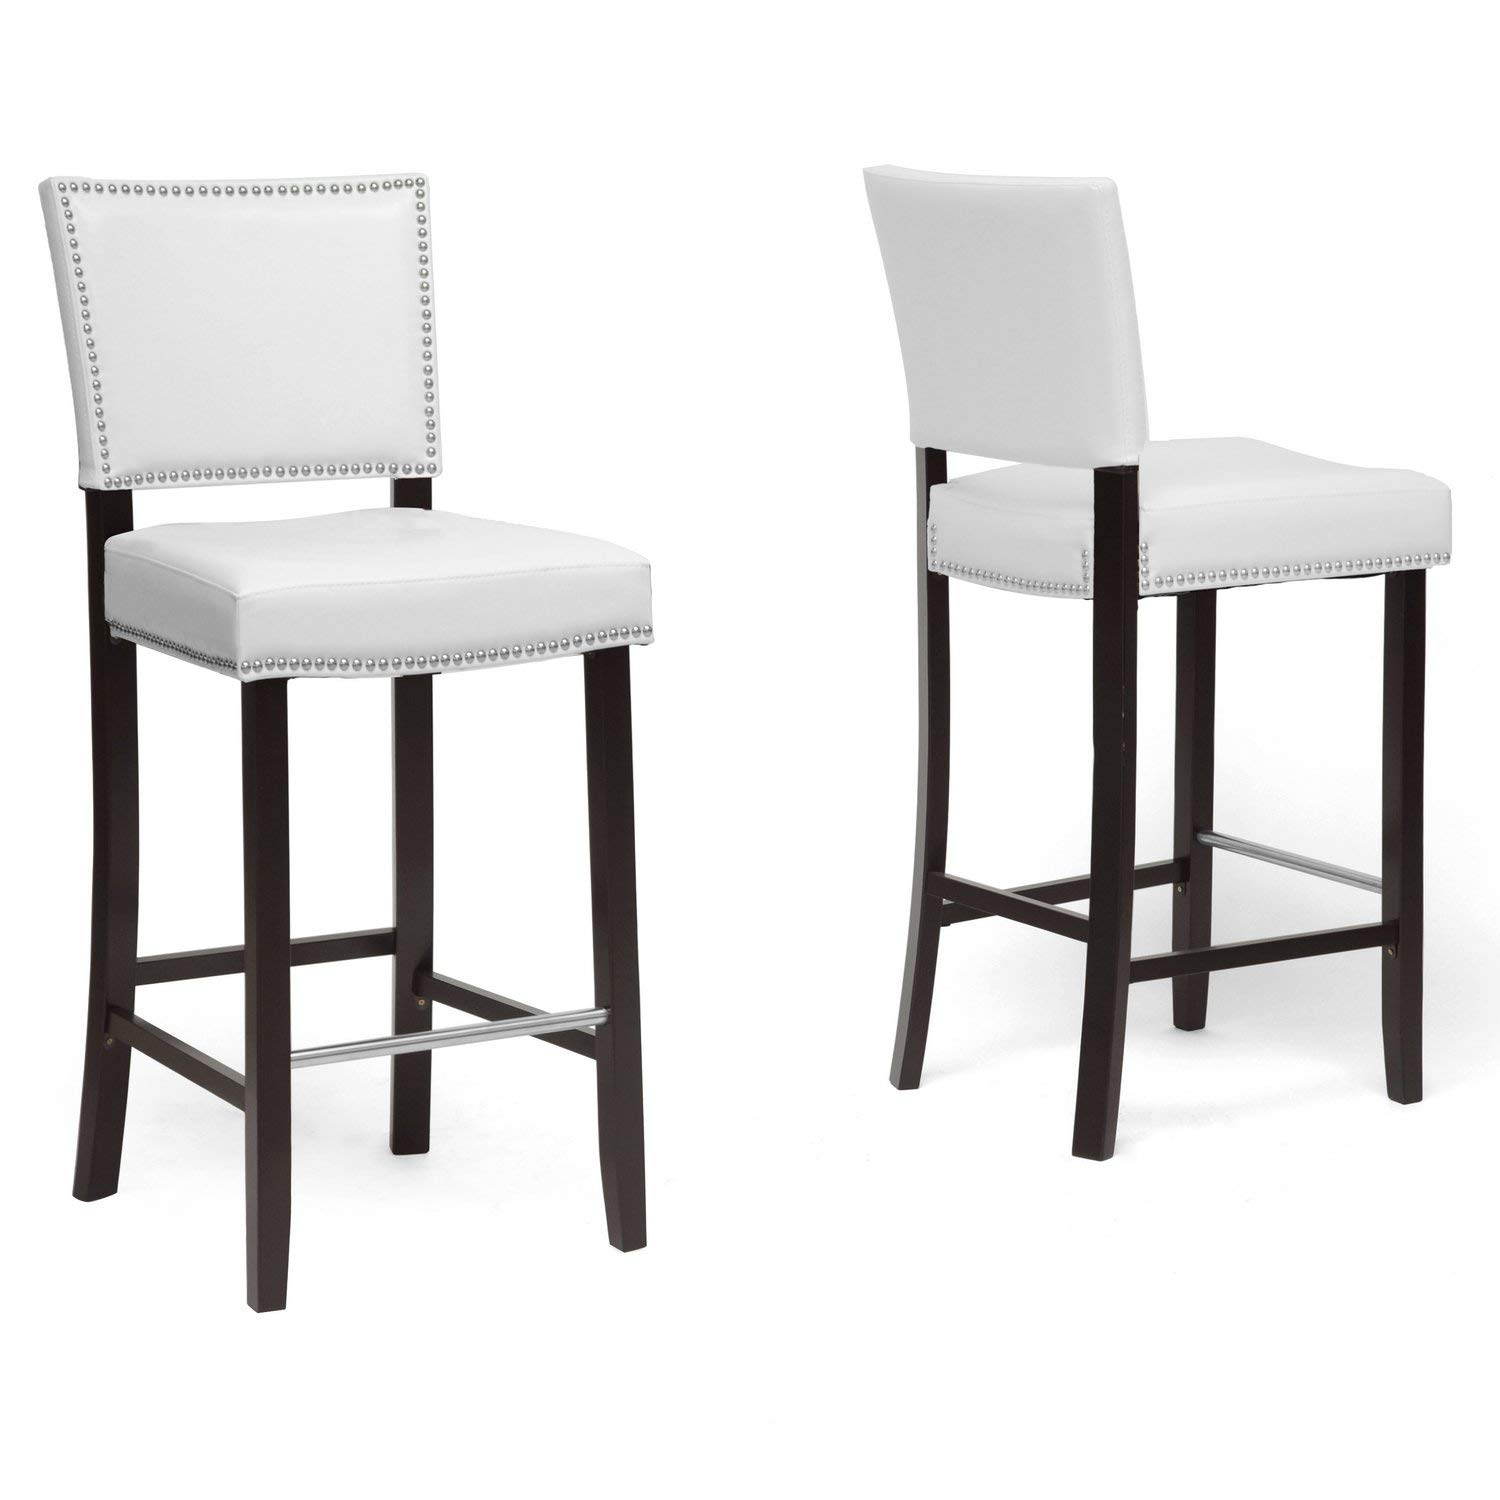 modern bar stools amazon.com: baxton studio aries modern bar stool with nail head trim, FSHGSNB